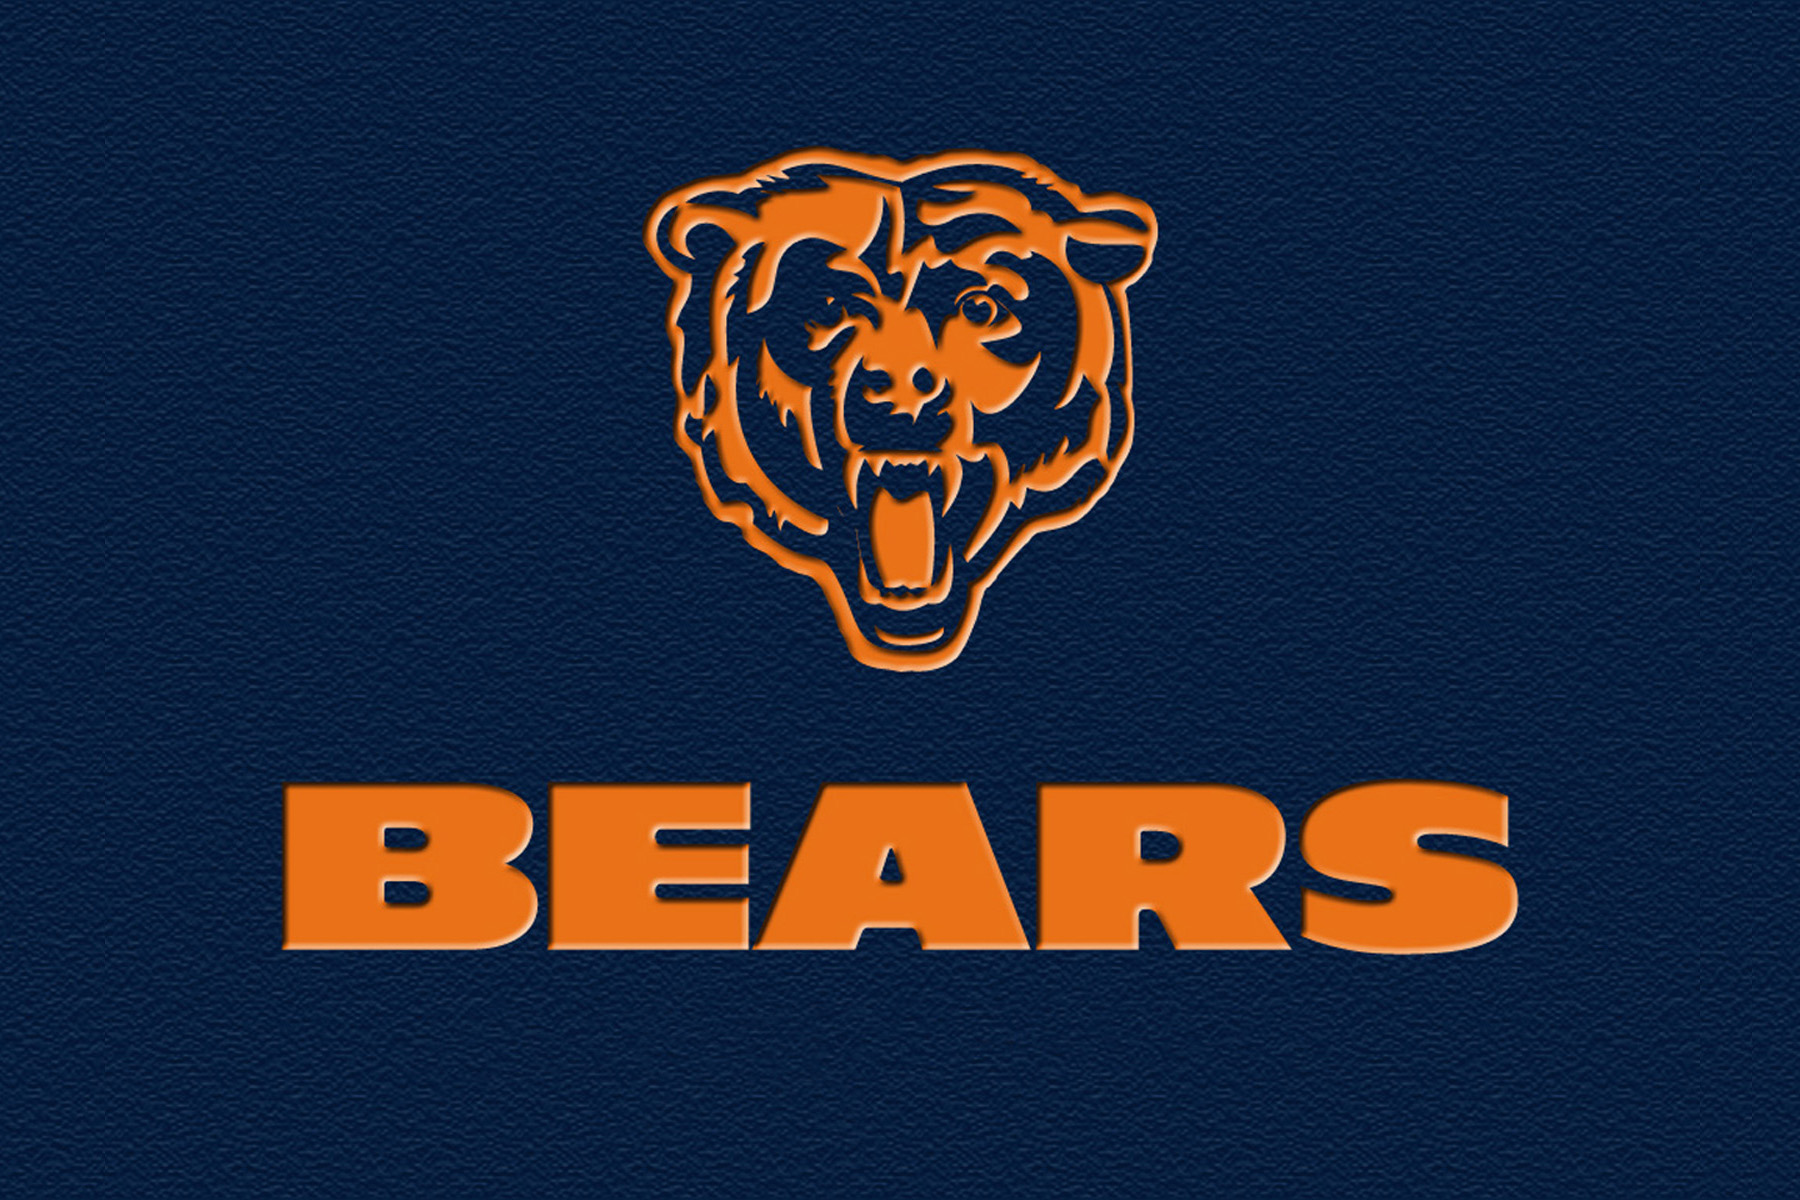 Chicago Bears Logos – NFL | Find Logos At FindThatLogo.com | The ...